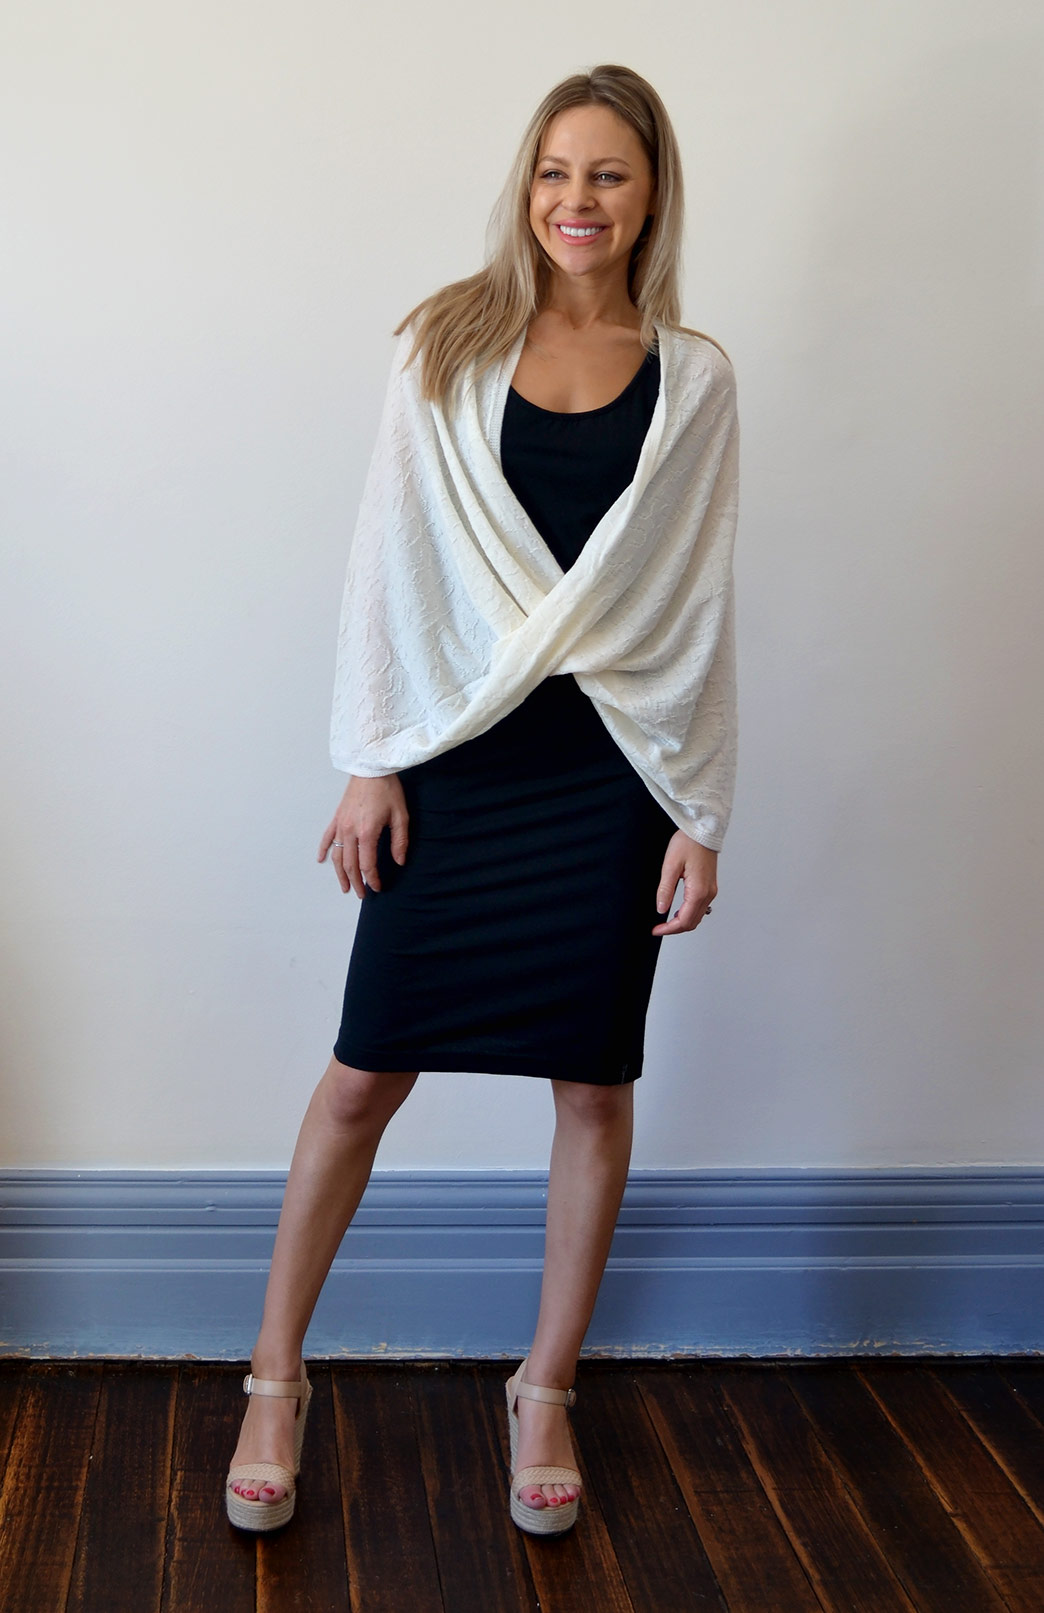 Merino Twisted Wrap - Women's Merino Wool Cream Twisted Wrap and Classic Shrug - Smitten Merino Tasmania Australia